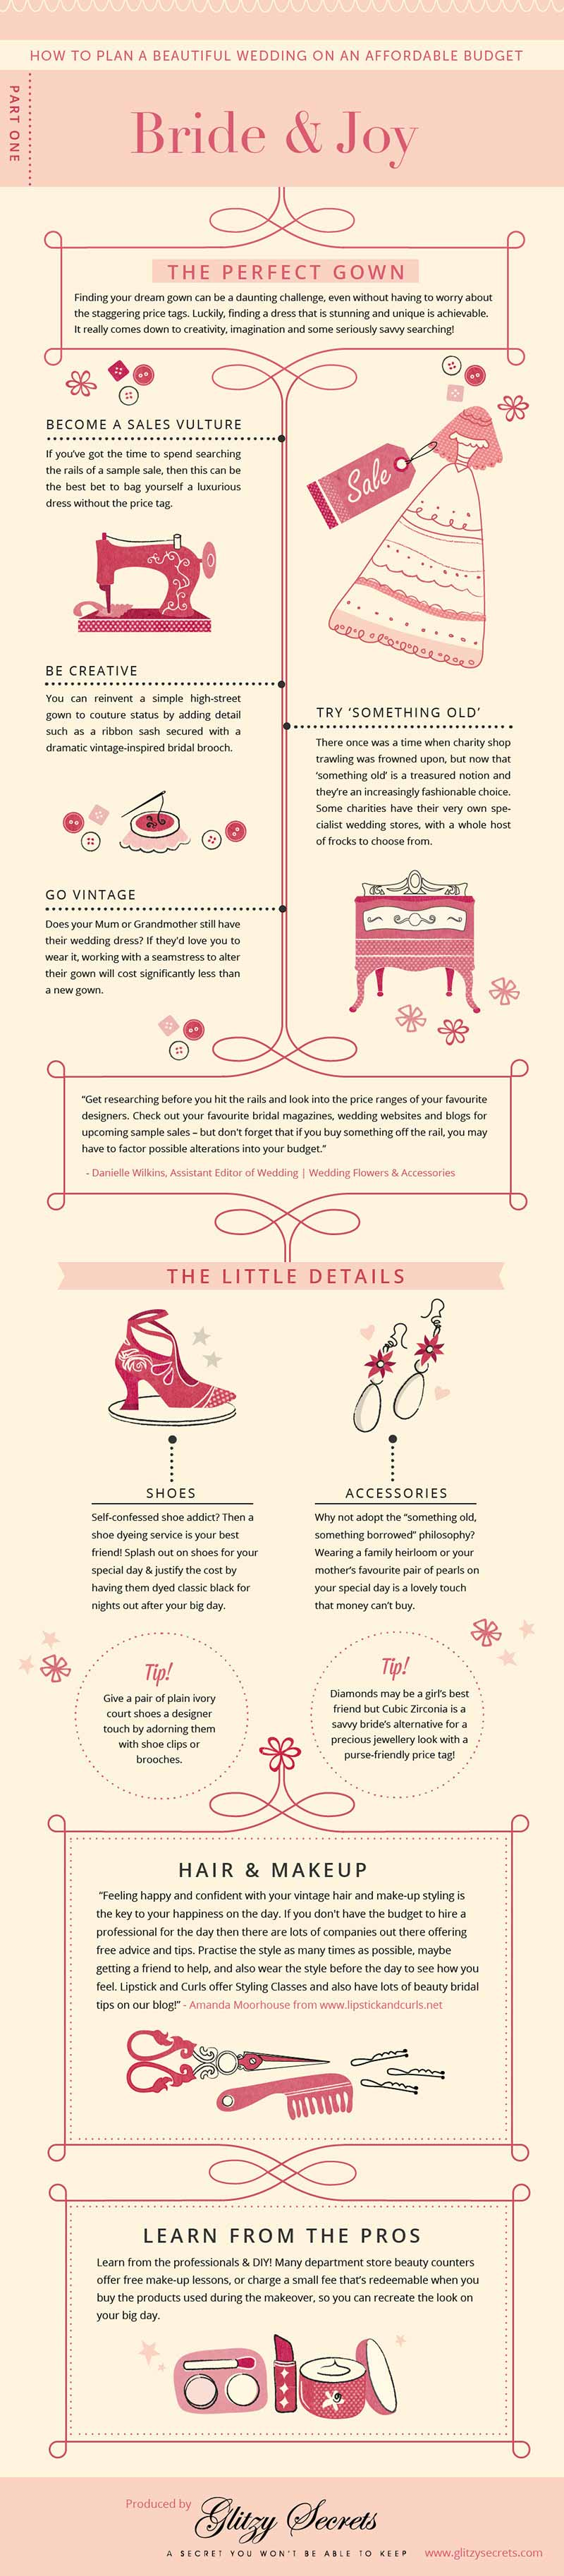 Wedding infographic for the bride